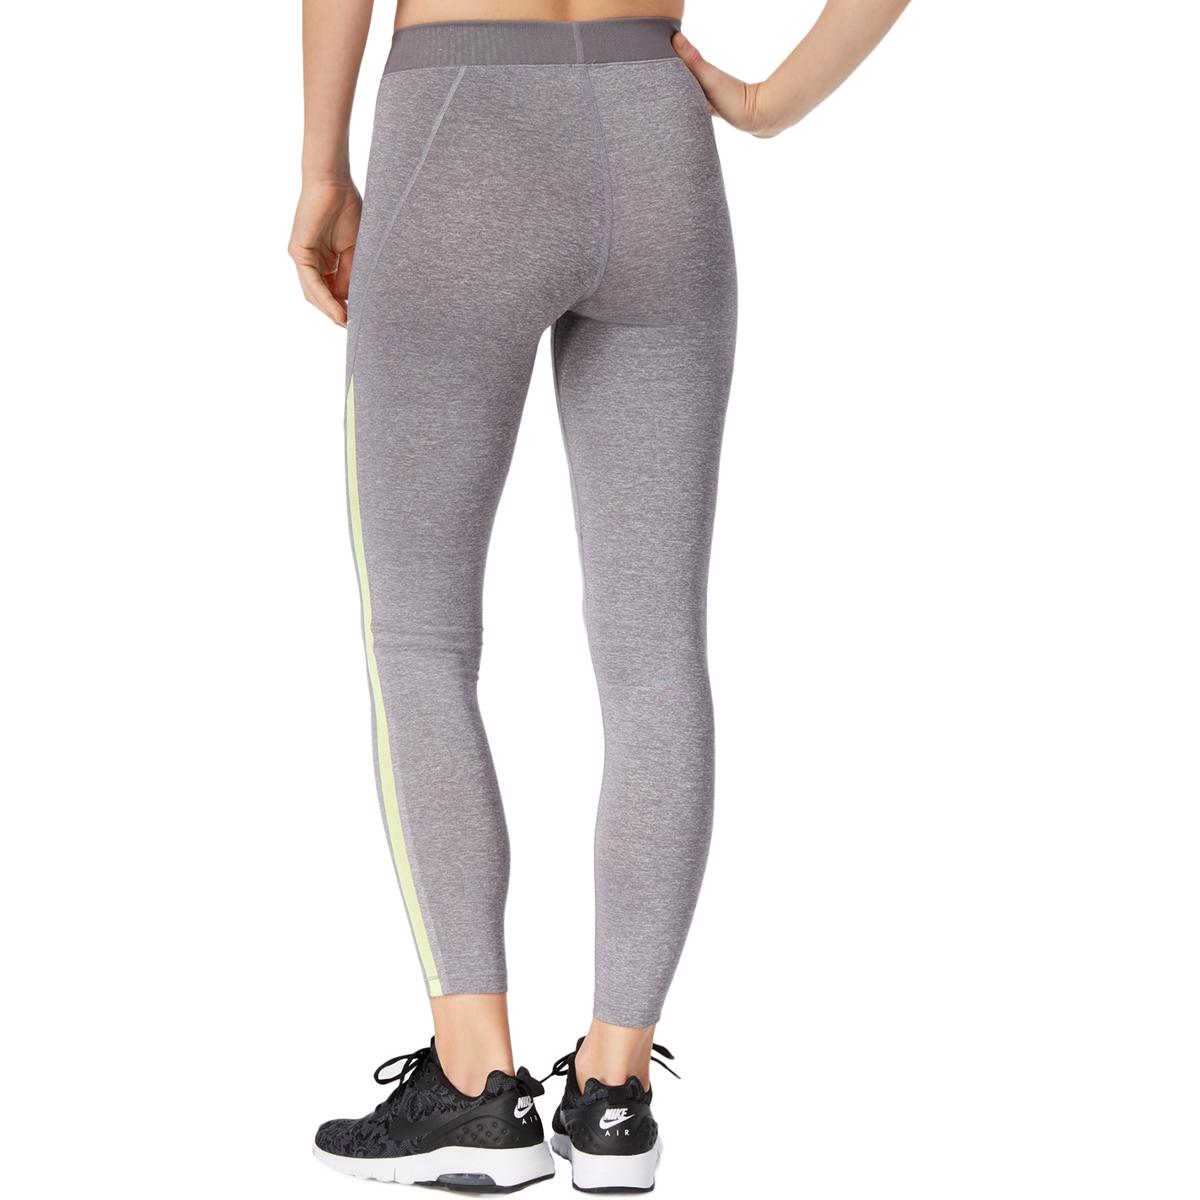 70baabb4f4a579 Nike Womens Gray Fitness Yoga Running Athletic Leggings L BHFO 8422. About  this product. Last one! Picture 1 of 4; Picture 2 of 4; Picture 3 of 4;  Picture 4 ...